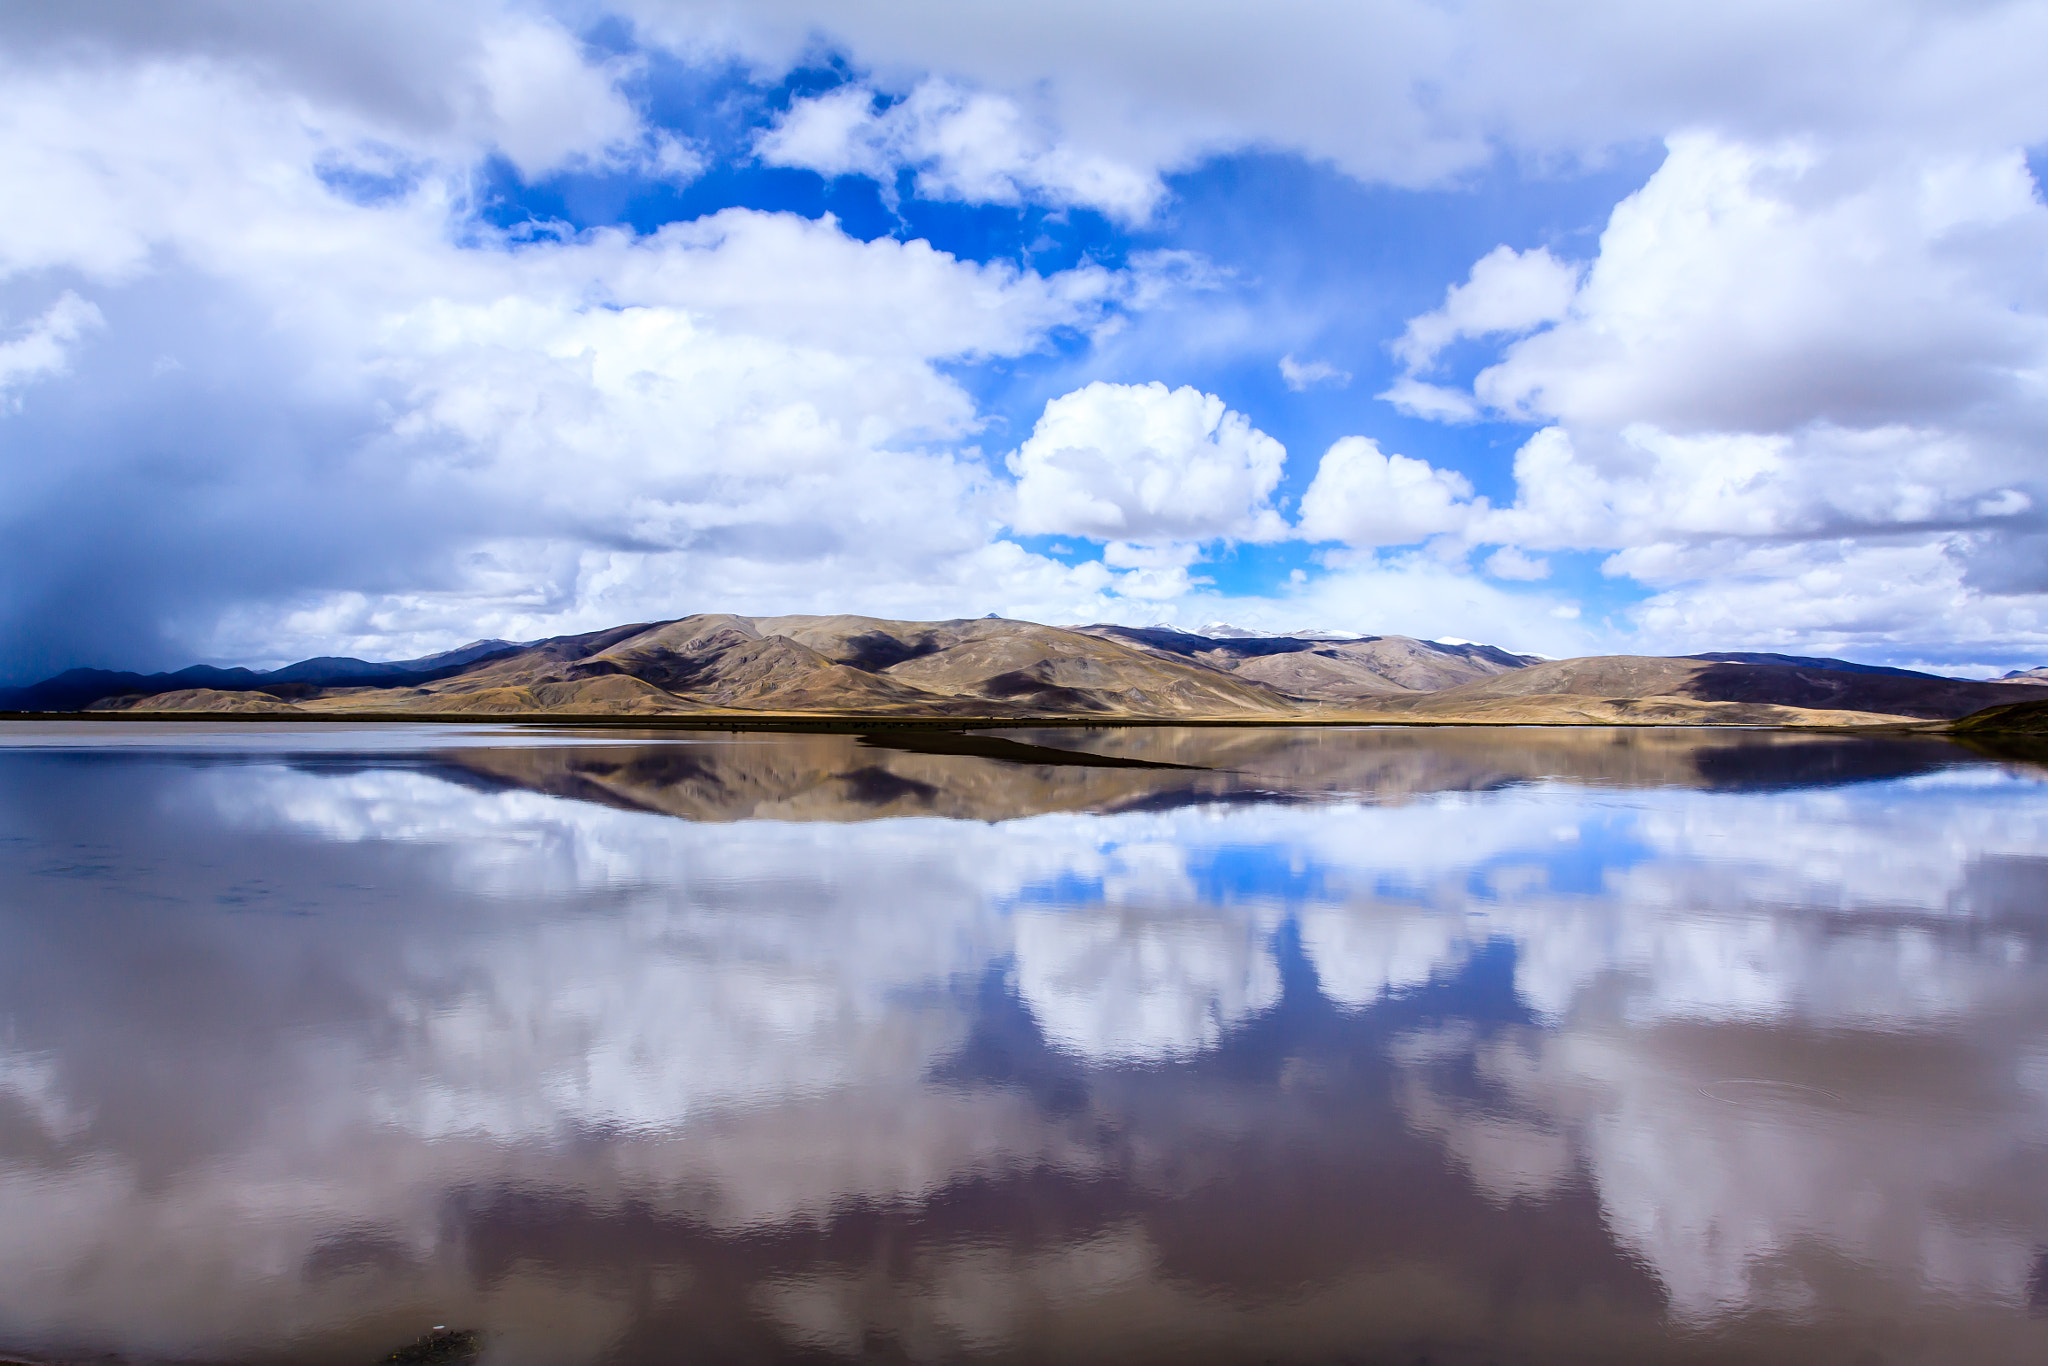 Photograph Lake with sky by Aoshi Vn on 500px